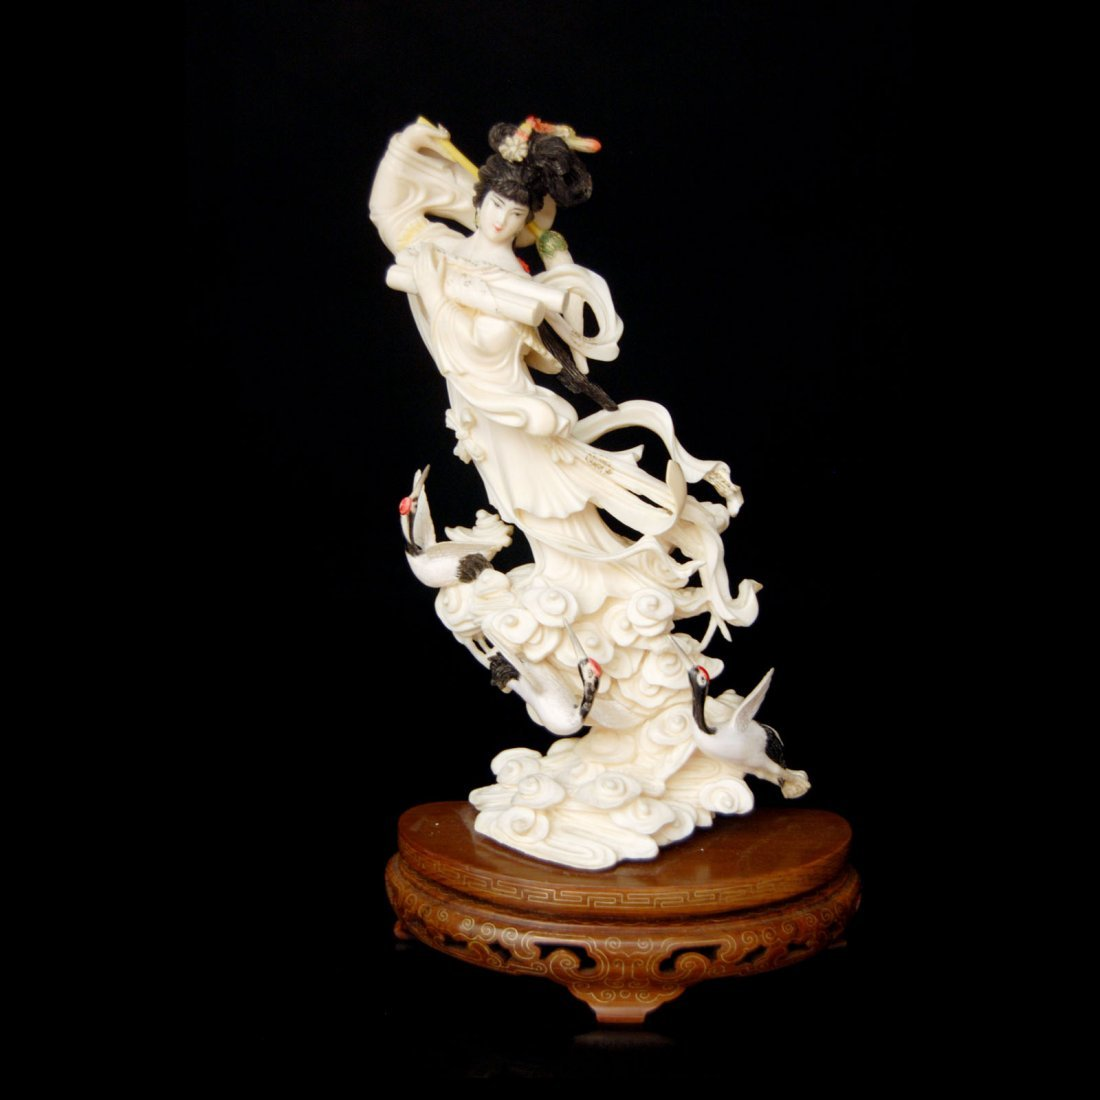 338: An Ivory Carving of a Flying Fairy Maiden